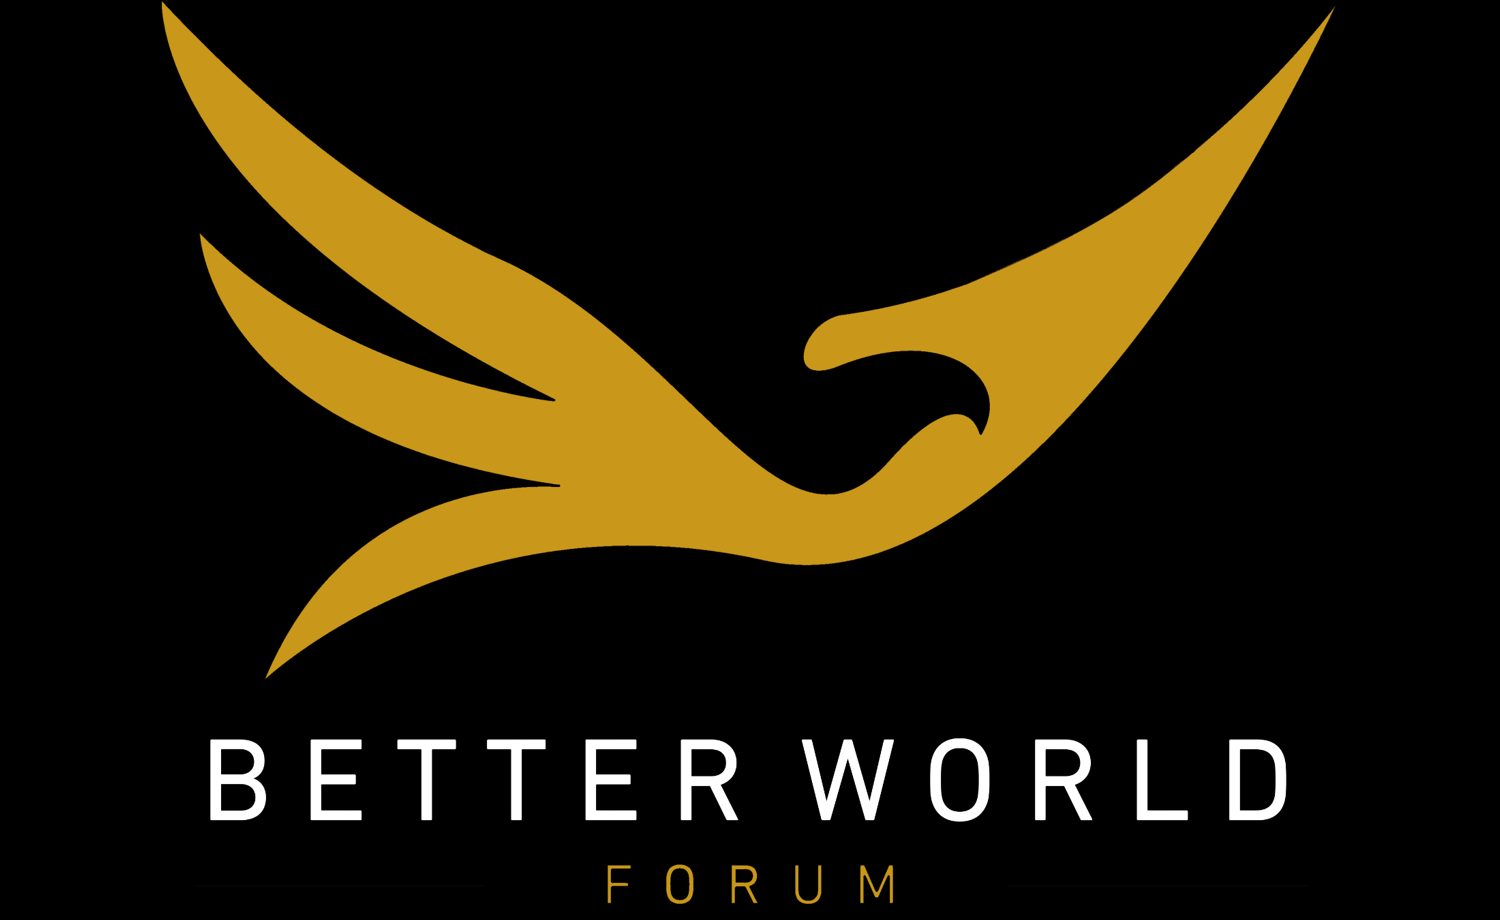 Better world forum and Visoansla